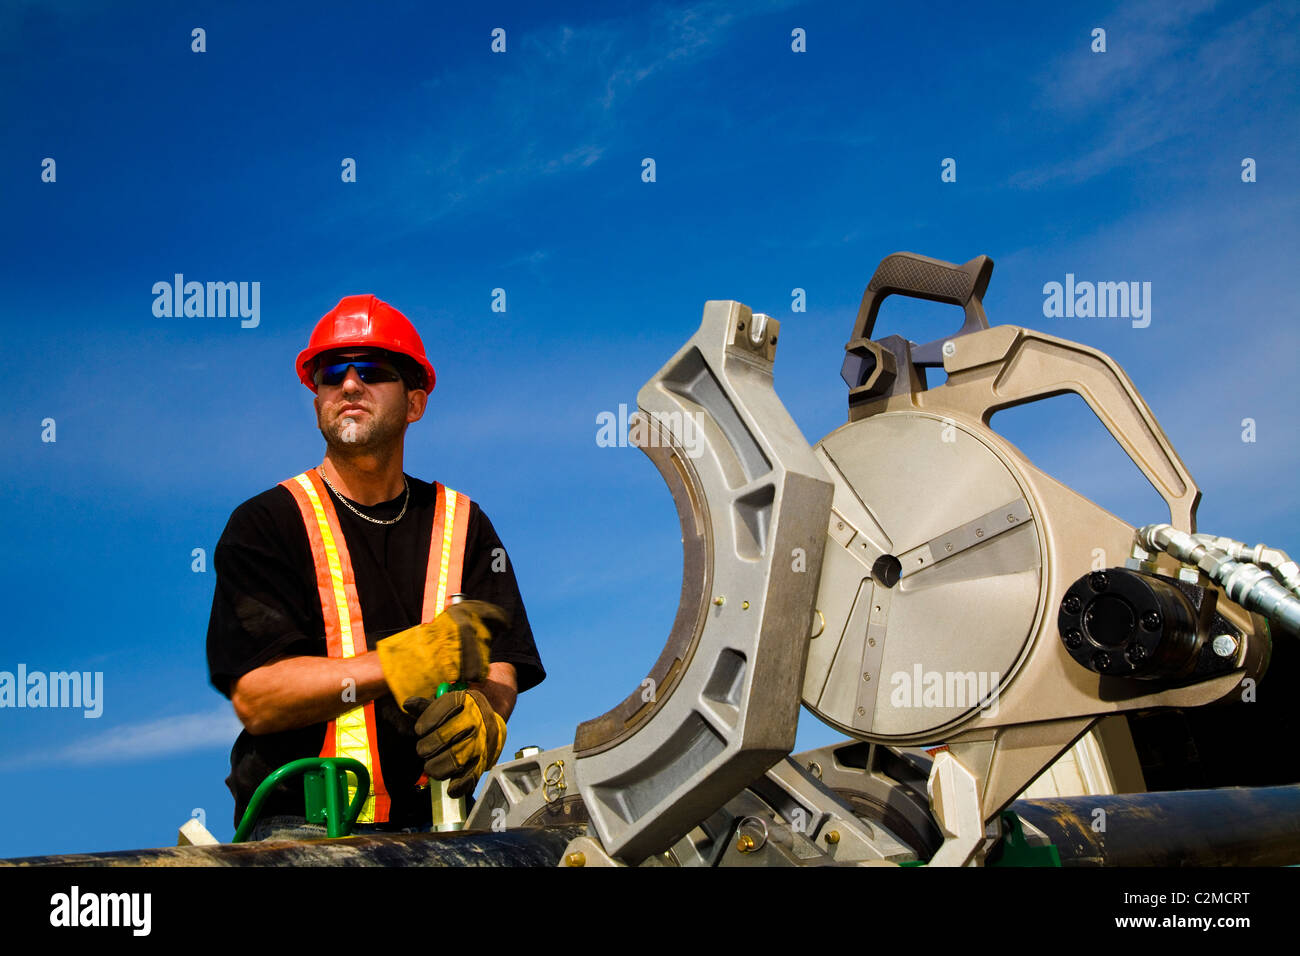 A Workman On Site - Stock Image